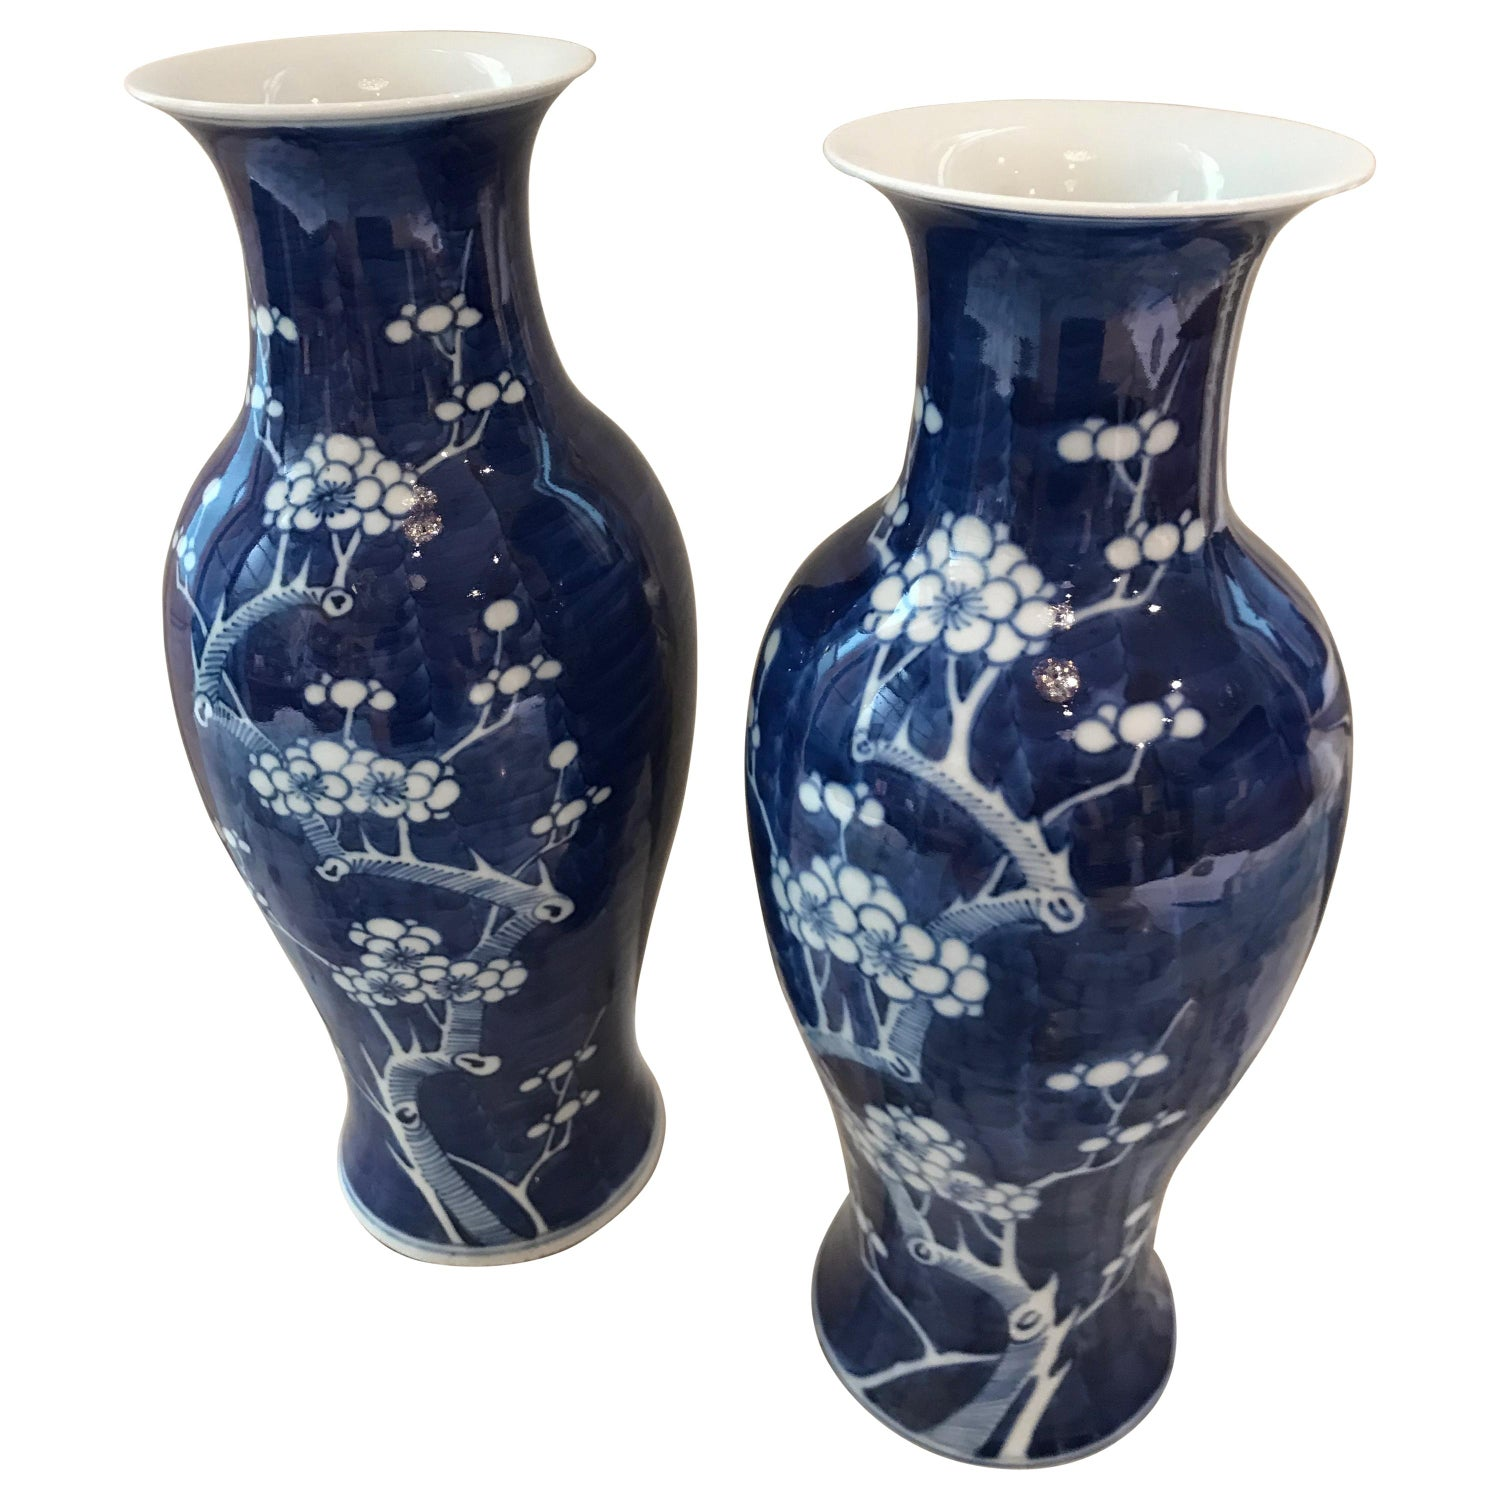 20th Century Vases - 11,550 For Sale at 1stdibs - Page 39 on